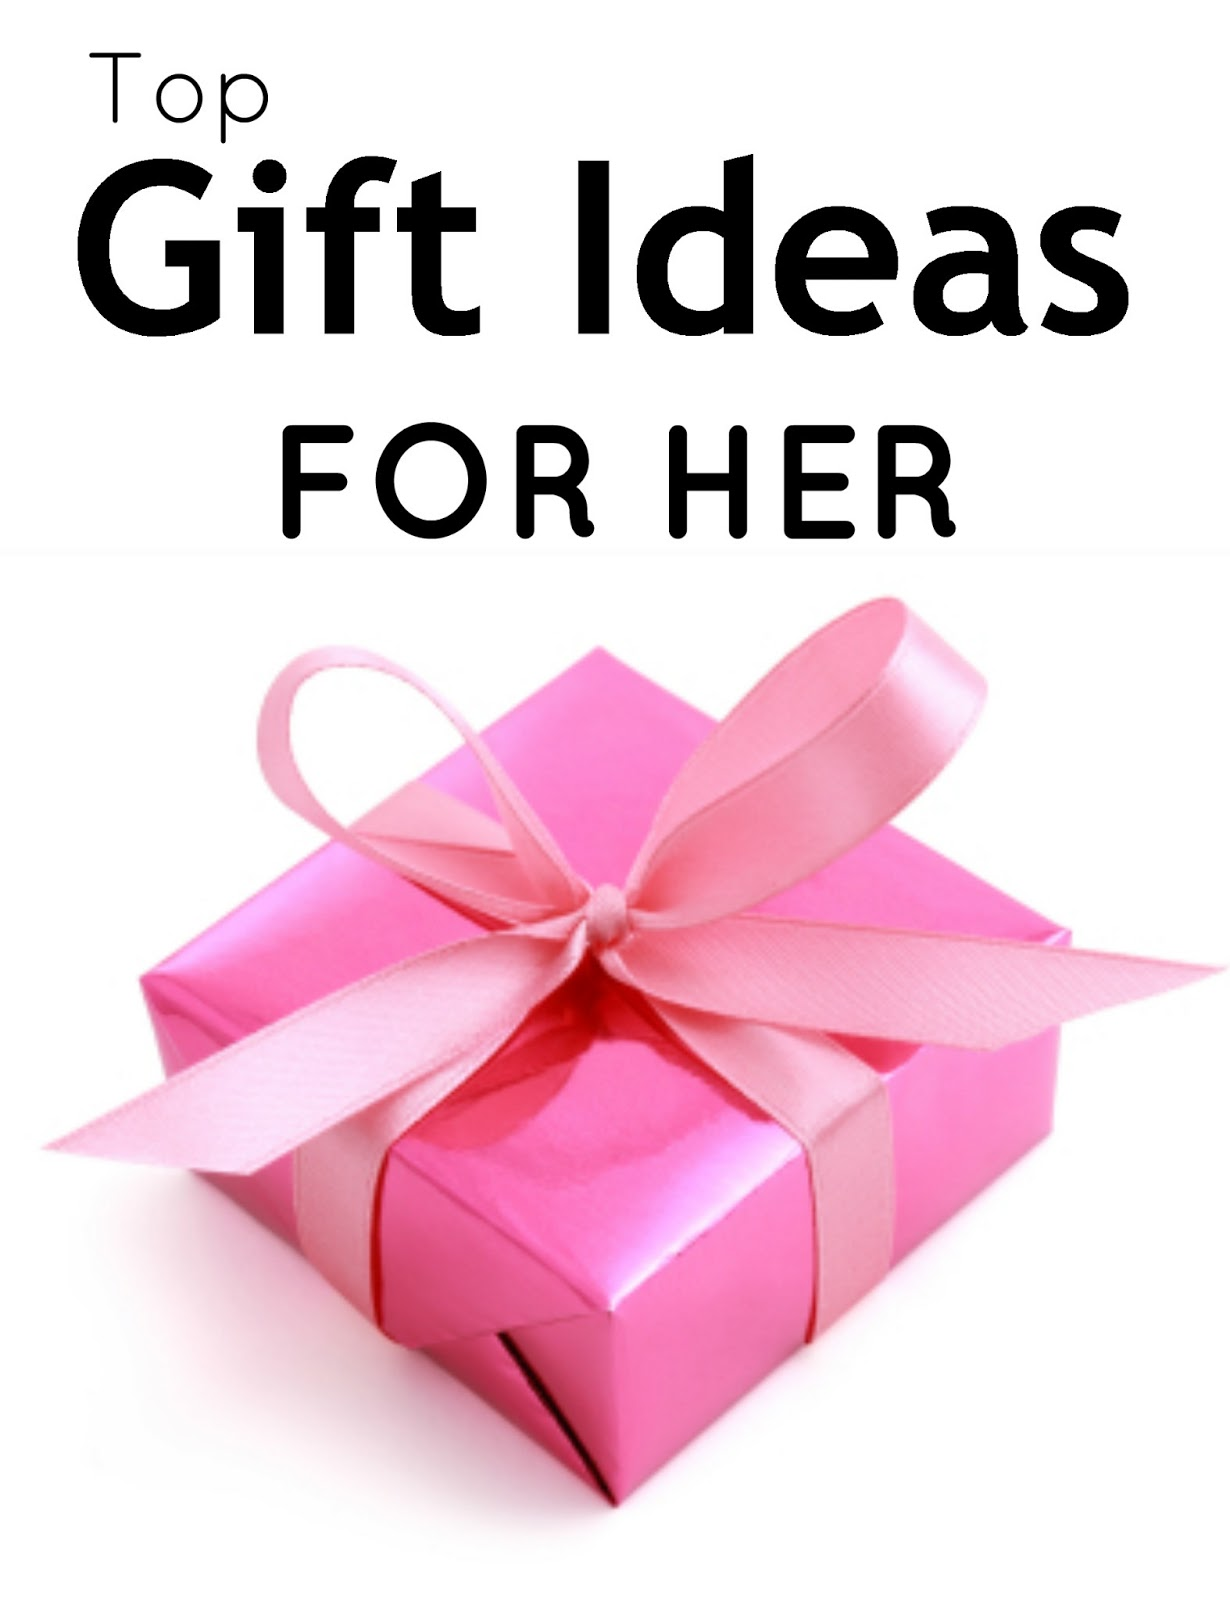 Best Gifts 2015 For Her Mommy Mia Monologues Top Gift Ideas For Her 2013